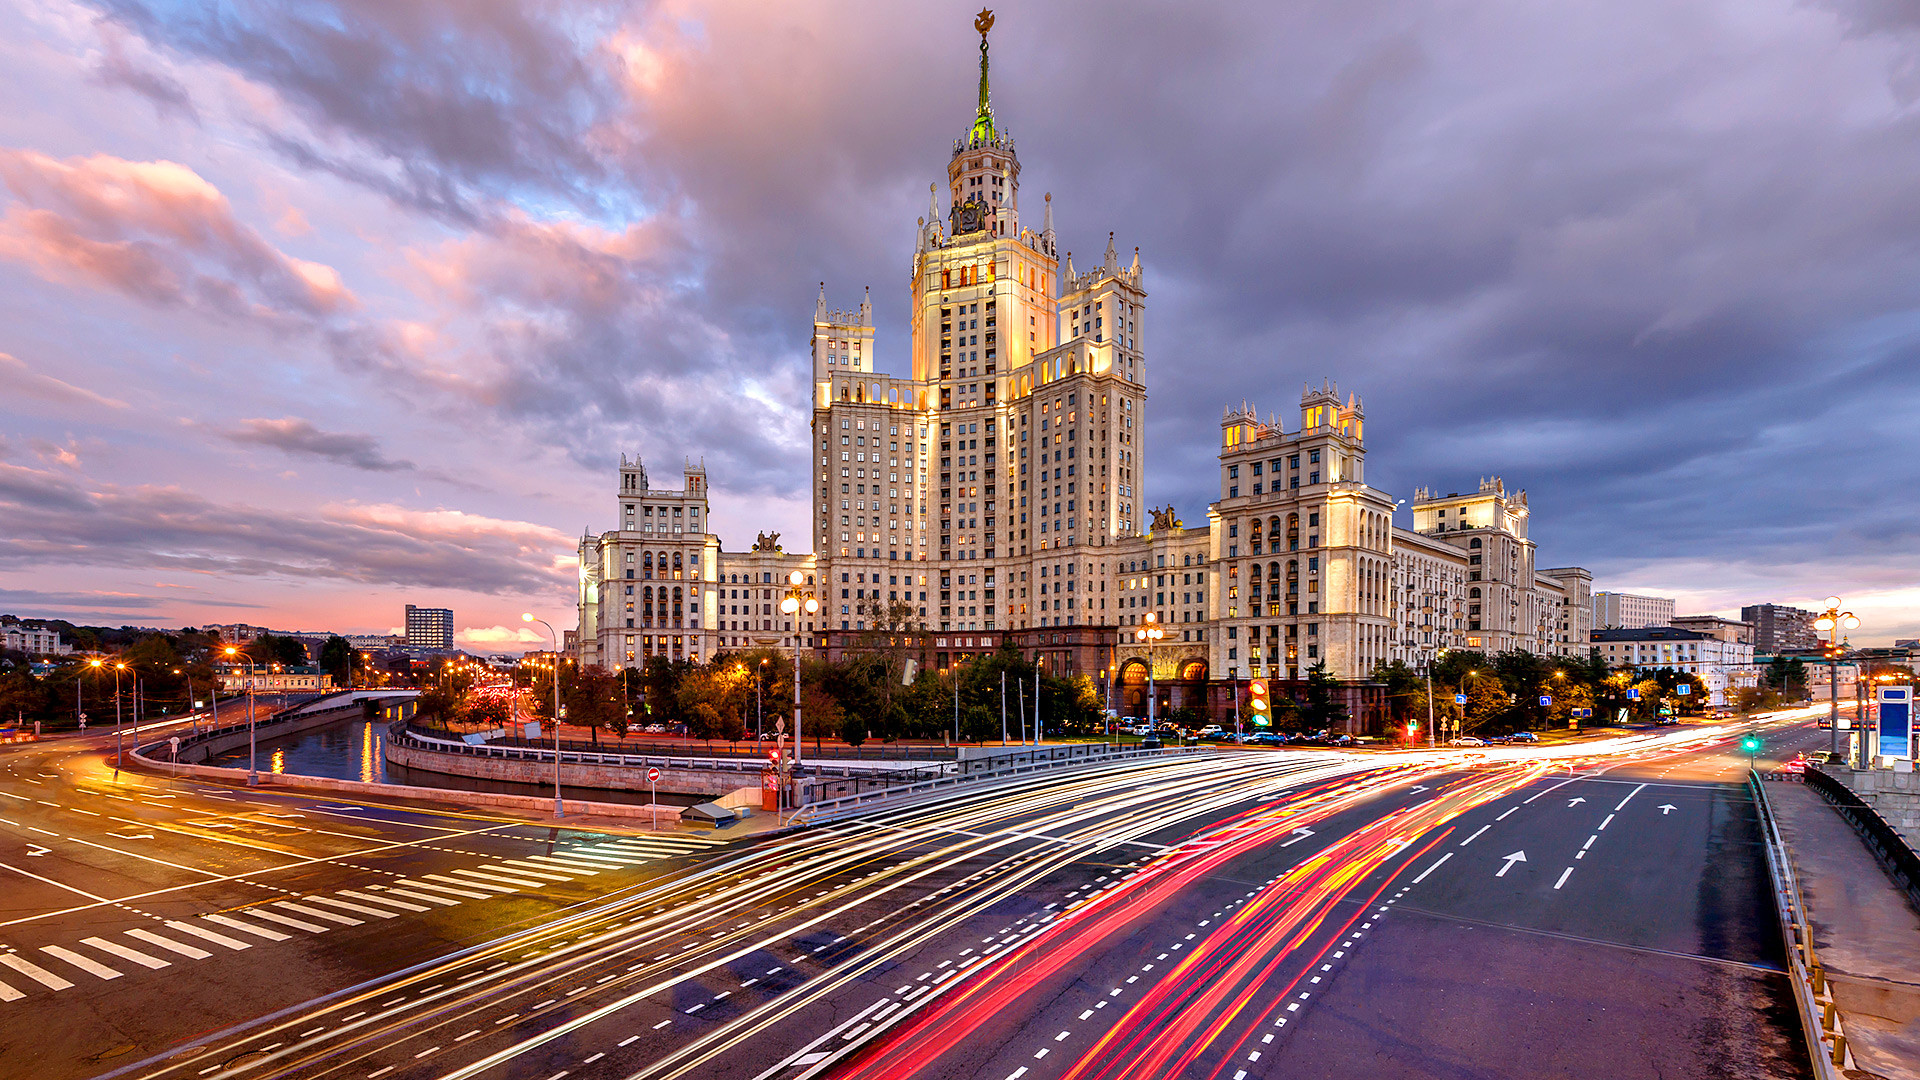 The seven skyscrapers gave birth to a unique architectural style known as Stalinist Empire or Socialist Classicism, inspired by American skyscrapers.